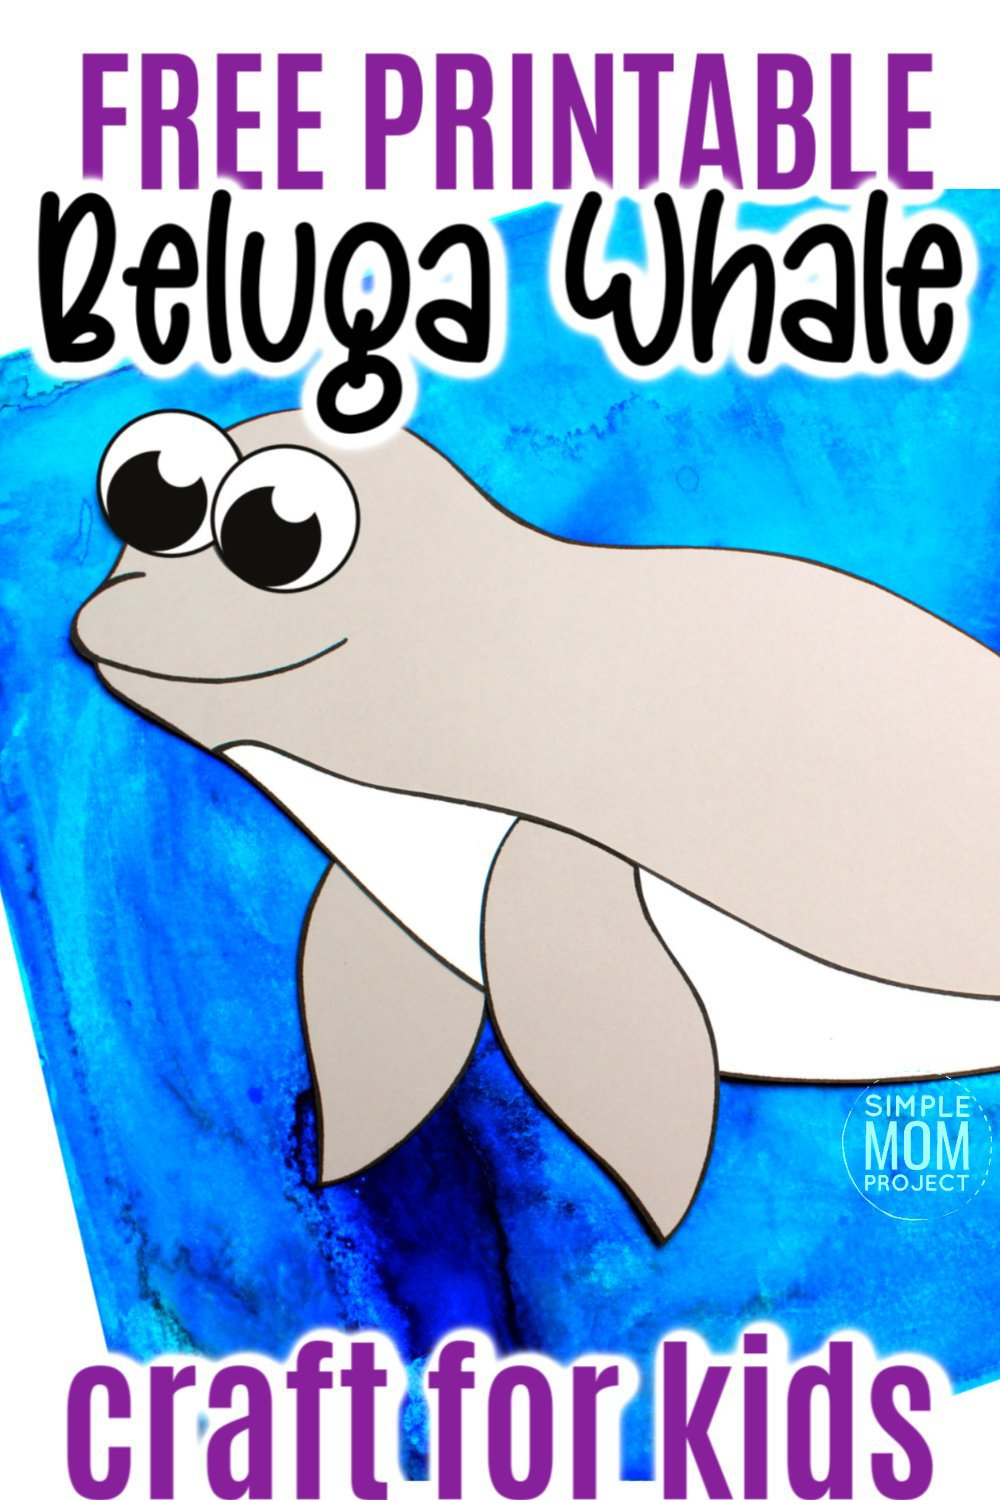 Free Printable Arctic Animal Beluga Whale Craft for Kids Preschoolers and Toddlers